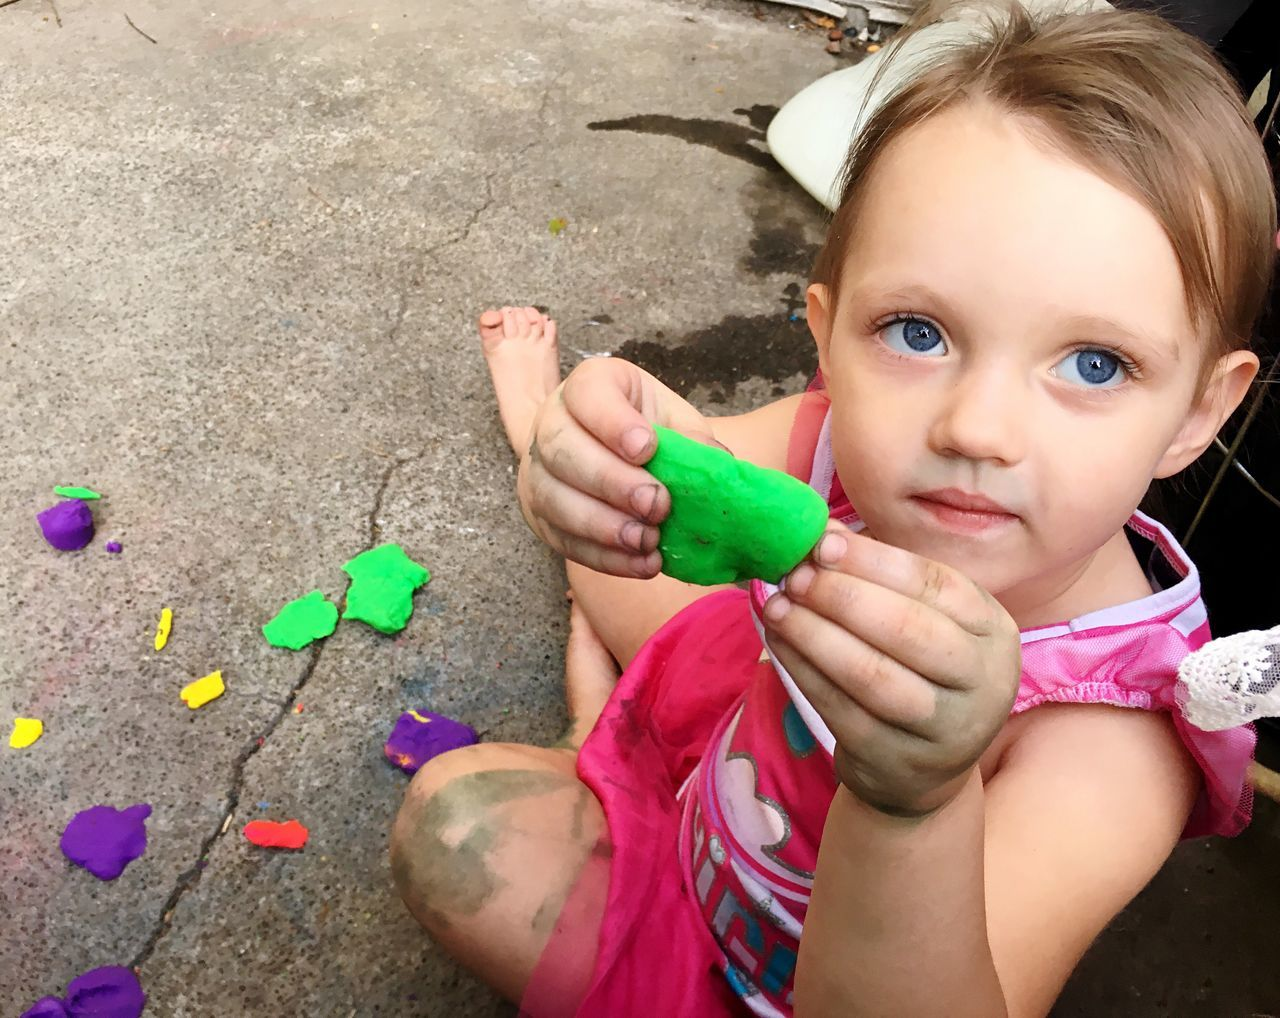 Playdough and Painting Childhood Innocence Cute Girls Playful Person Portrait Playing Togetherness Creativity Creating Family Matters Family Time Granddaughter Inspire Girl Power Getting Dirty Playtime Playdough Non-toxic Bodypaint Kids Of EyeEm Colorful Outside Daytime